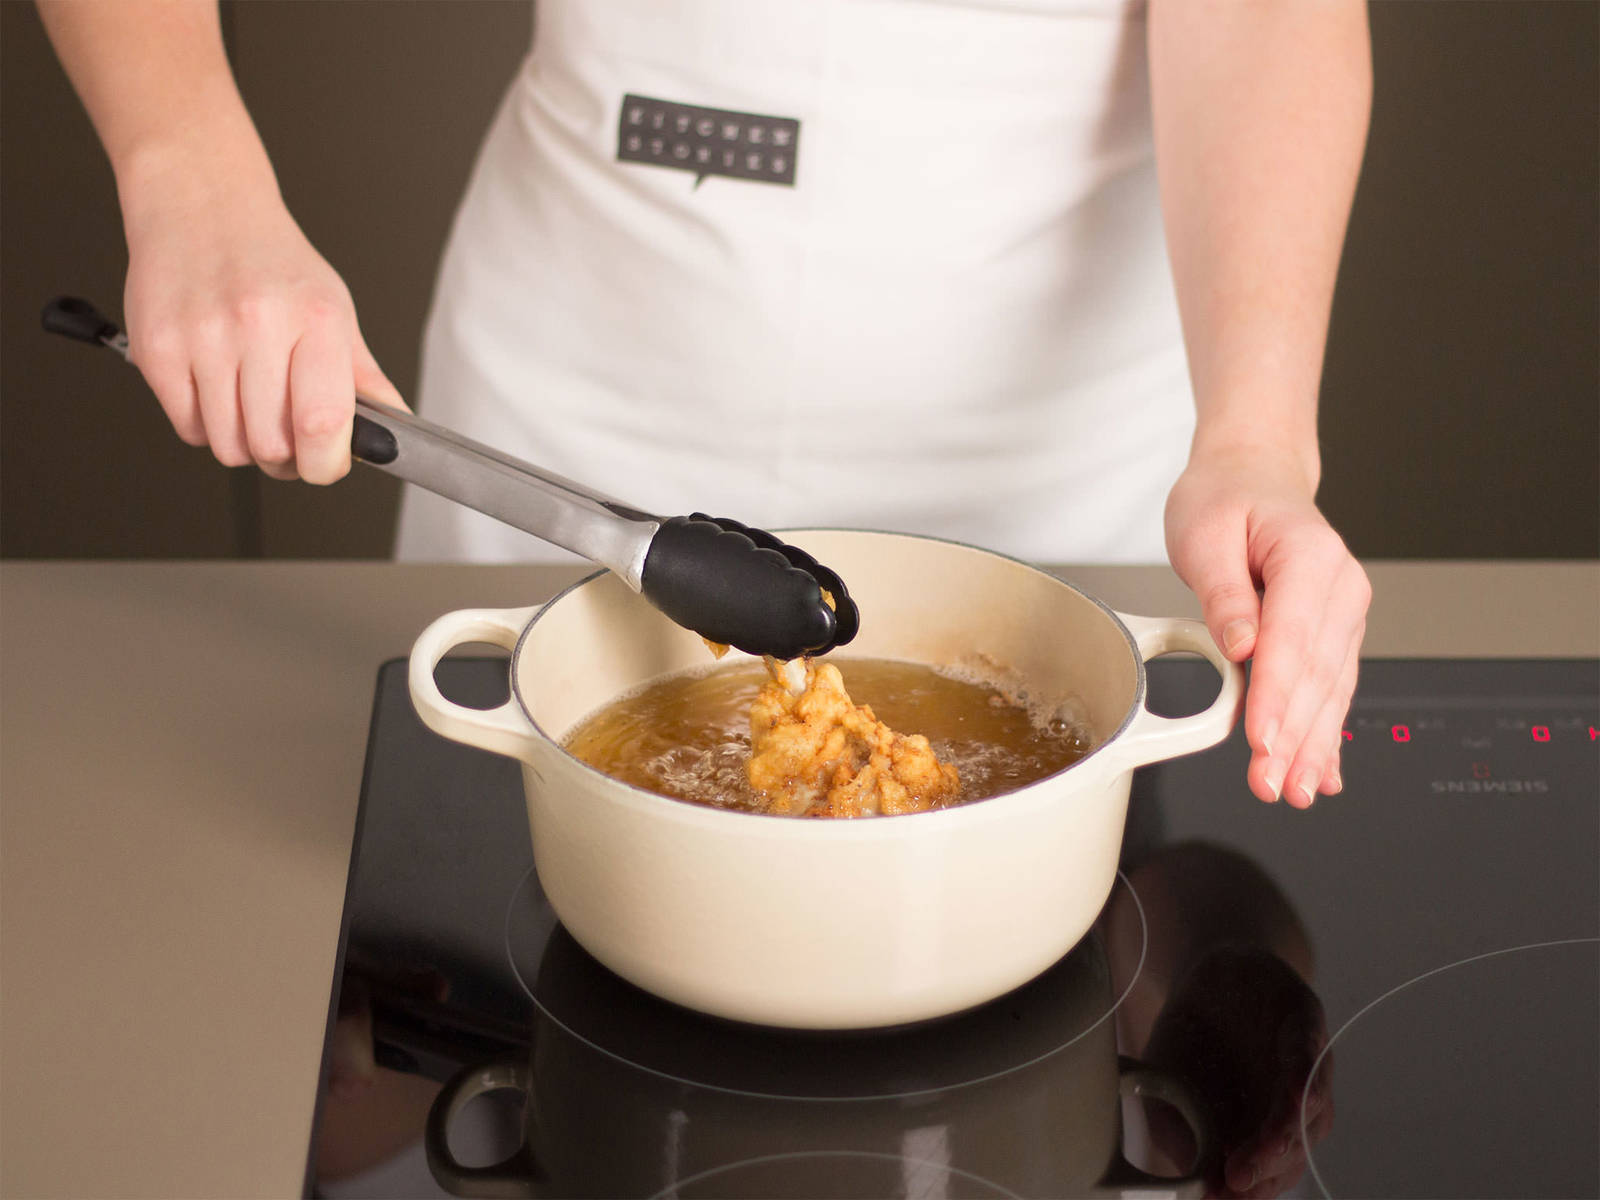 Preheat frying oil over medium-high heat in a large, deep frying pan. The right temperature is reached when small bubbles form when a wooden spoon is held into the oil. Fry chicken pieces in batches until brown and crispy for approx. 3 - 5 min. Transfer to a lined baking sheet and bake in a preheated oven at 200°C/400°F for approx. 10 - 15 min. Remove from oven and enjoy with lemon wedges and dipping sauces of your choice!